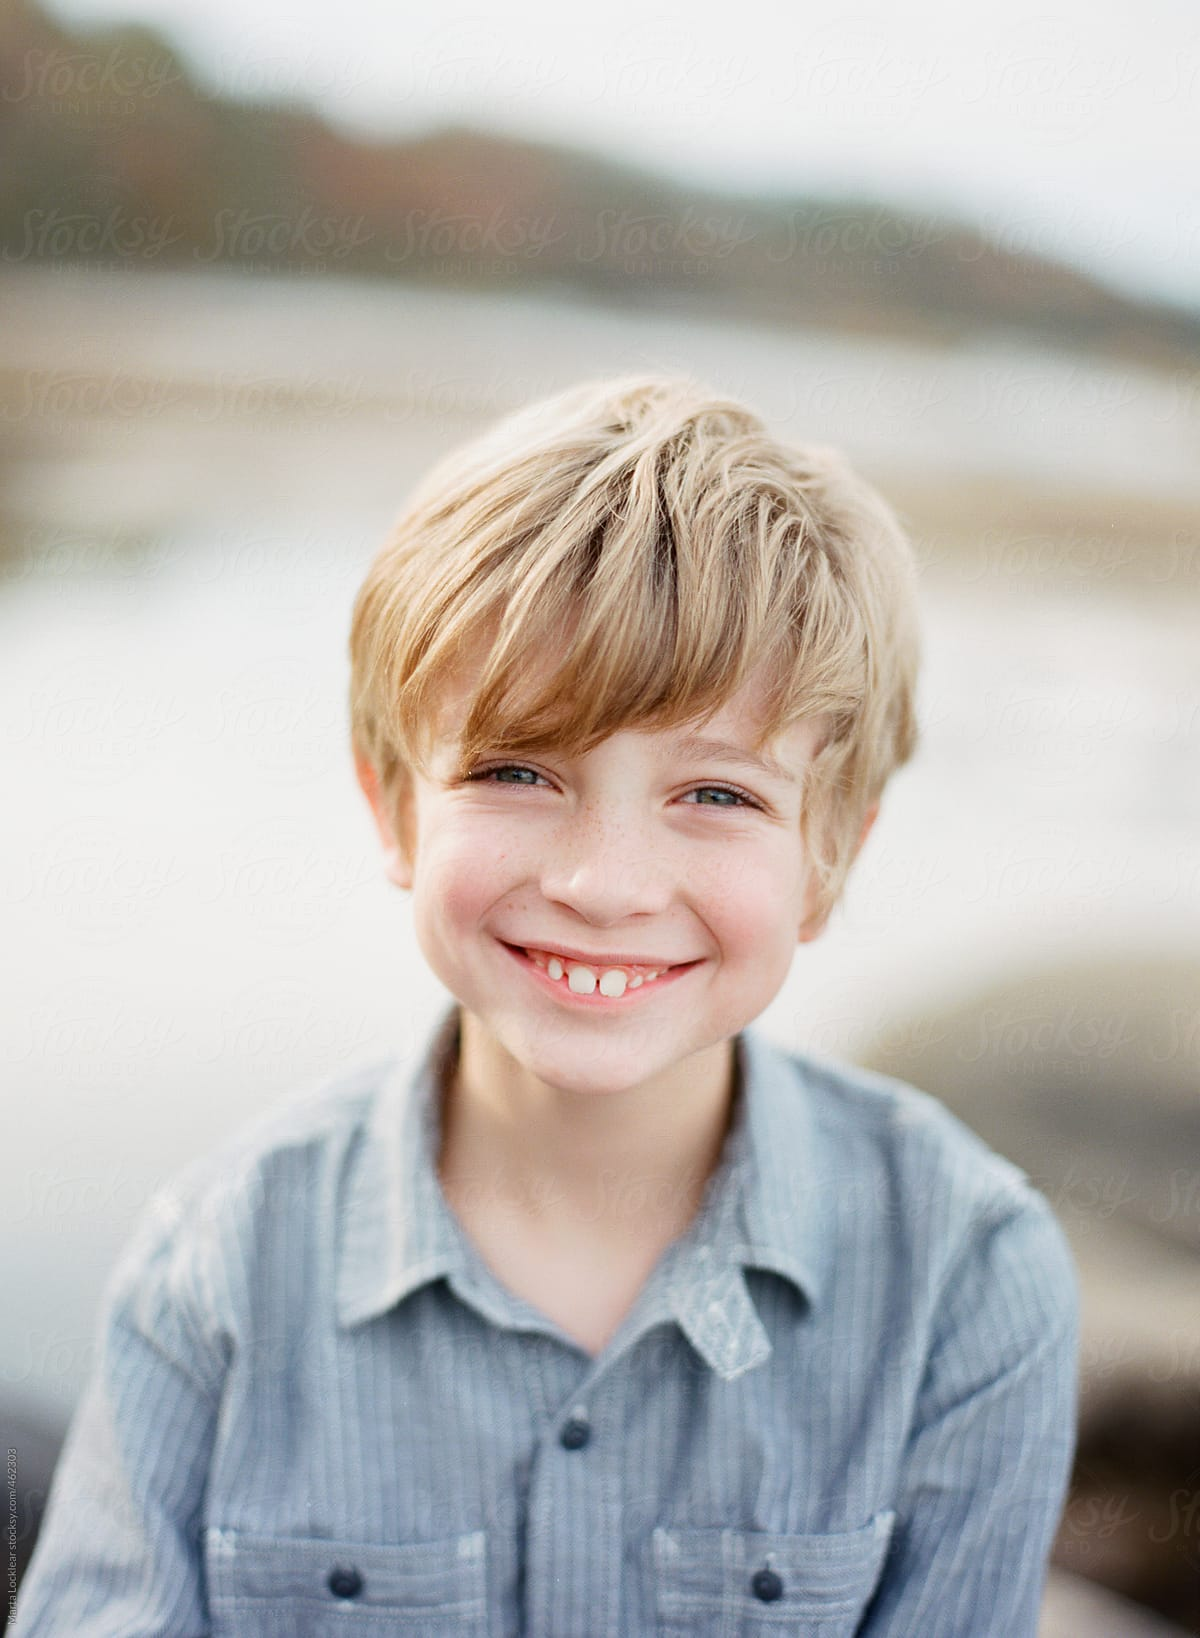 Trendy hairstyle for young boys